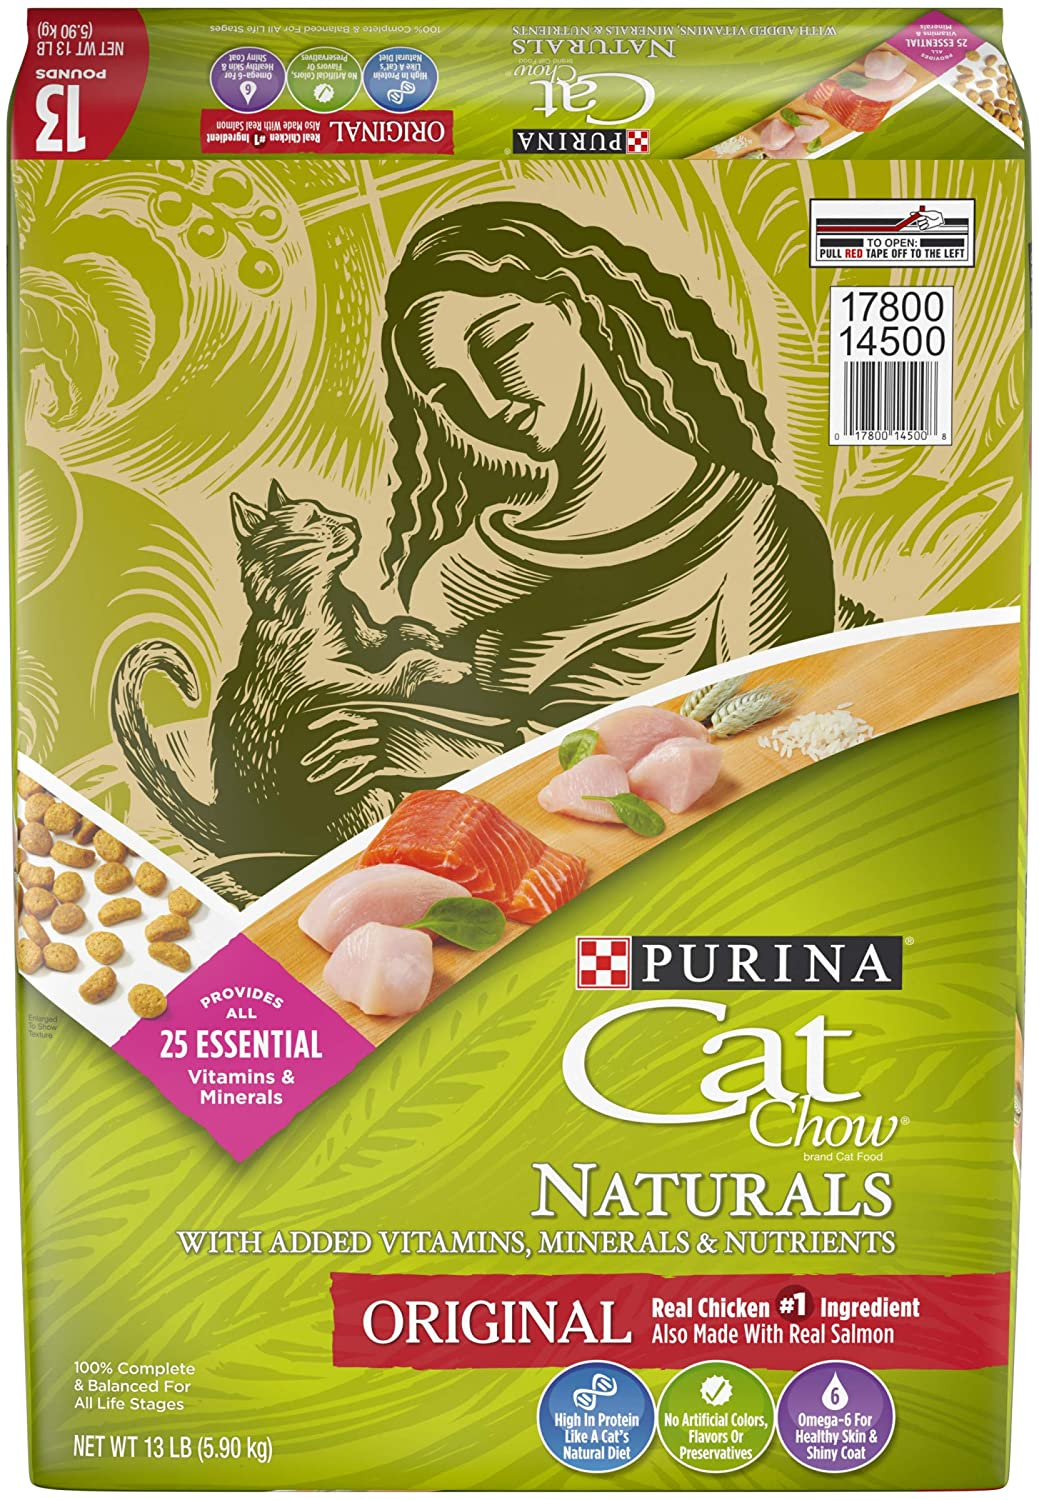 Purina Cat Chow Naturals with Chicken and Salmon Dry Cat Food